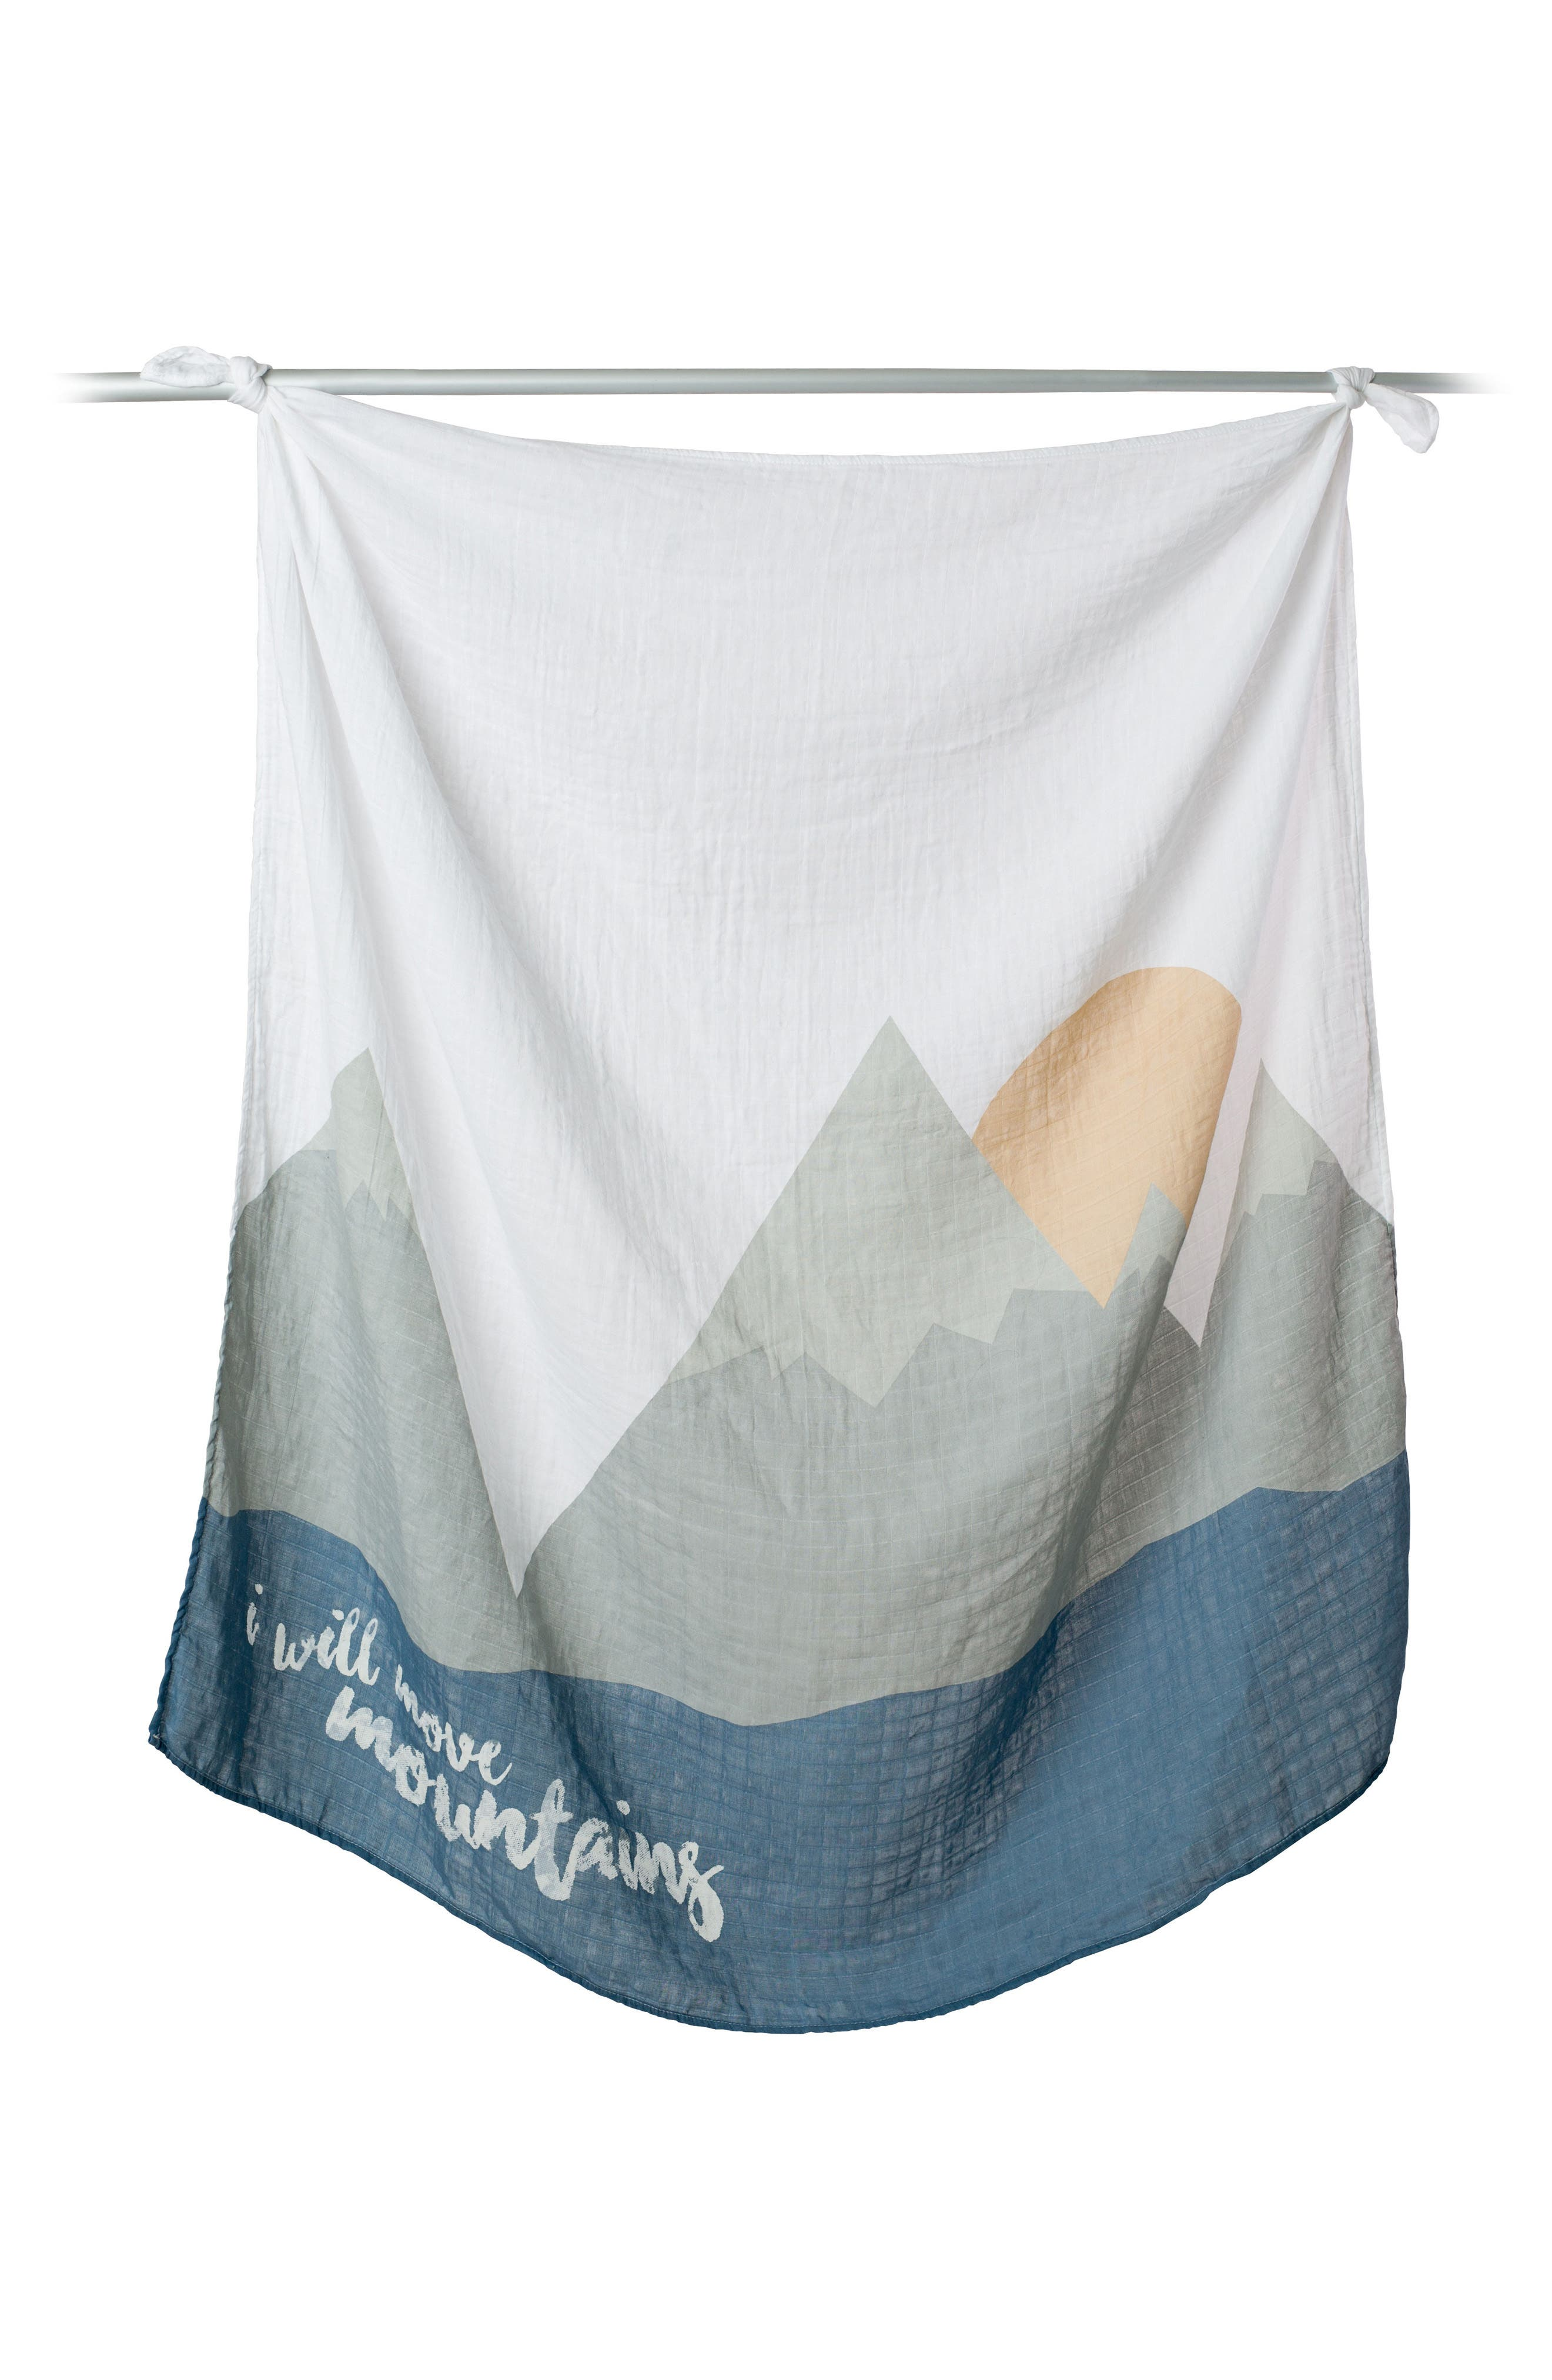 Baby's First Year - I Will Move Mountains Muslin Blanket & Milestone Card Set,                             Main thumbnail 1, color,                             Will Move Mountains